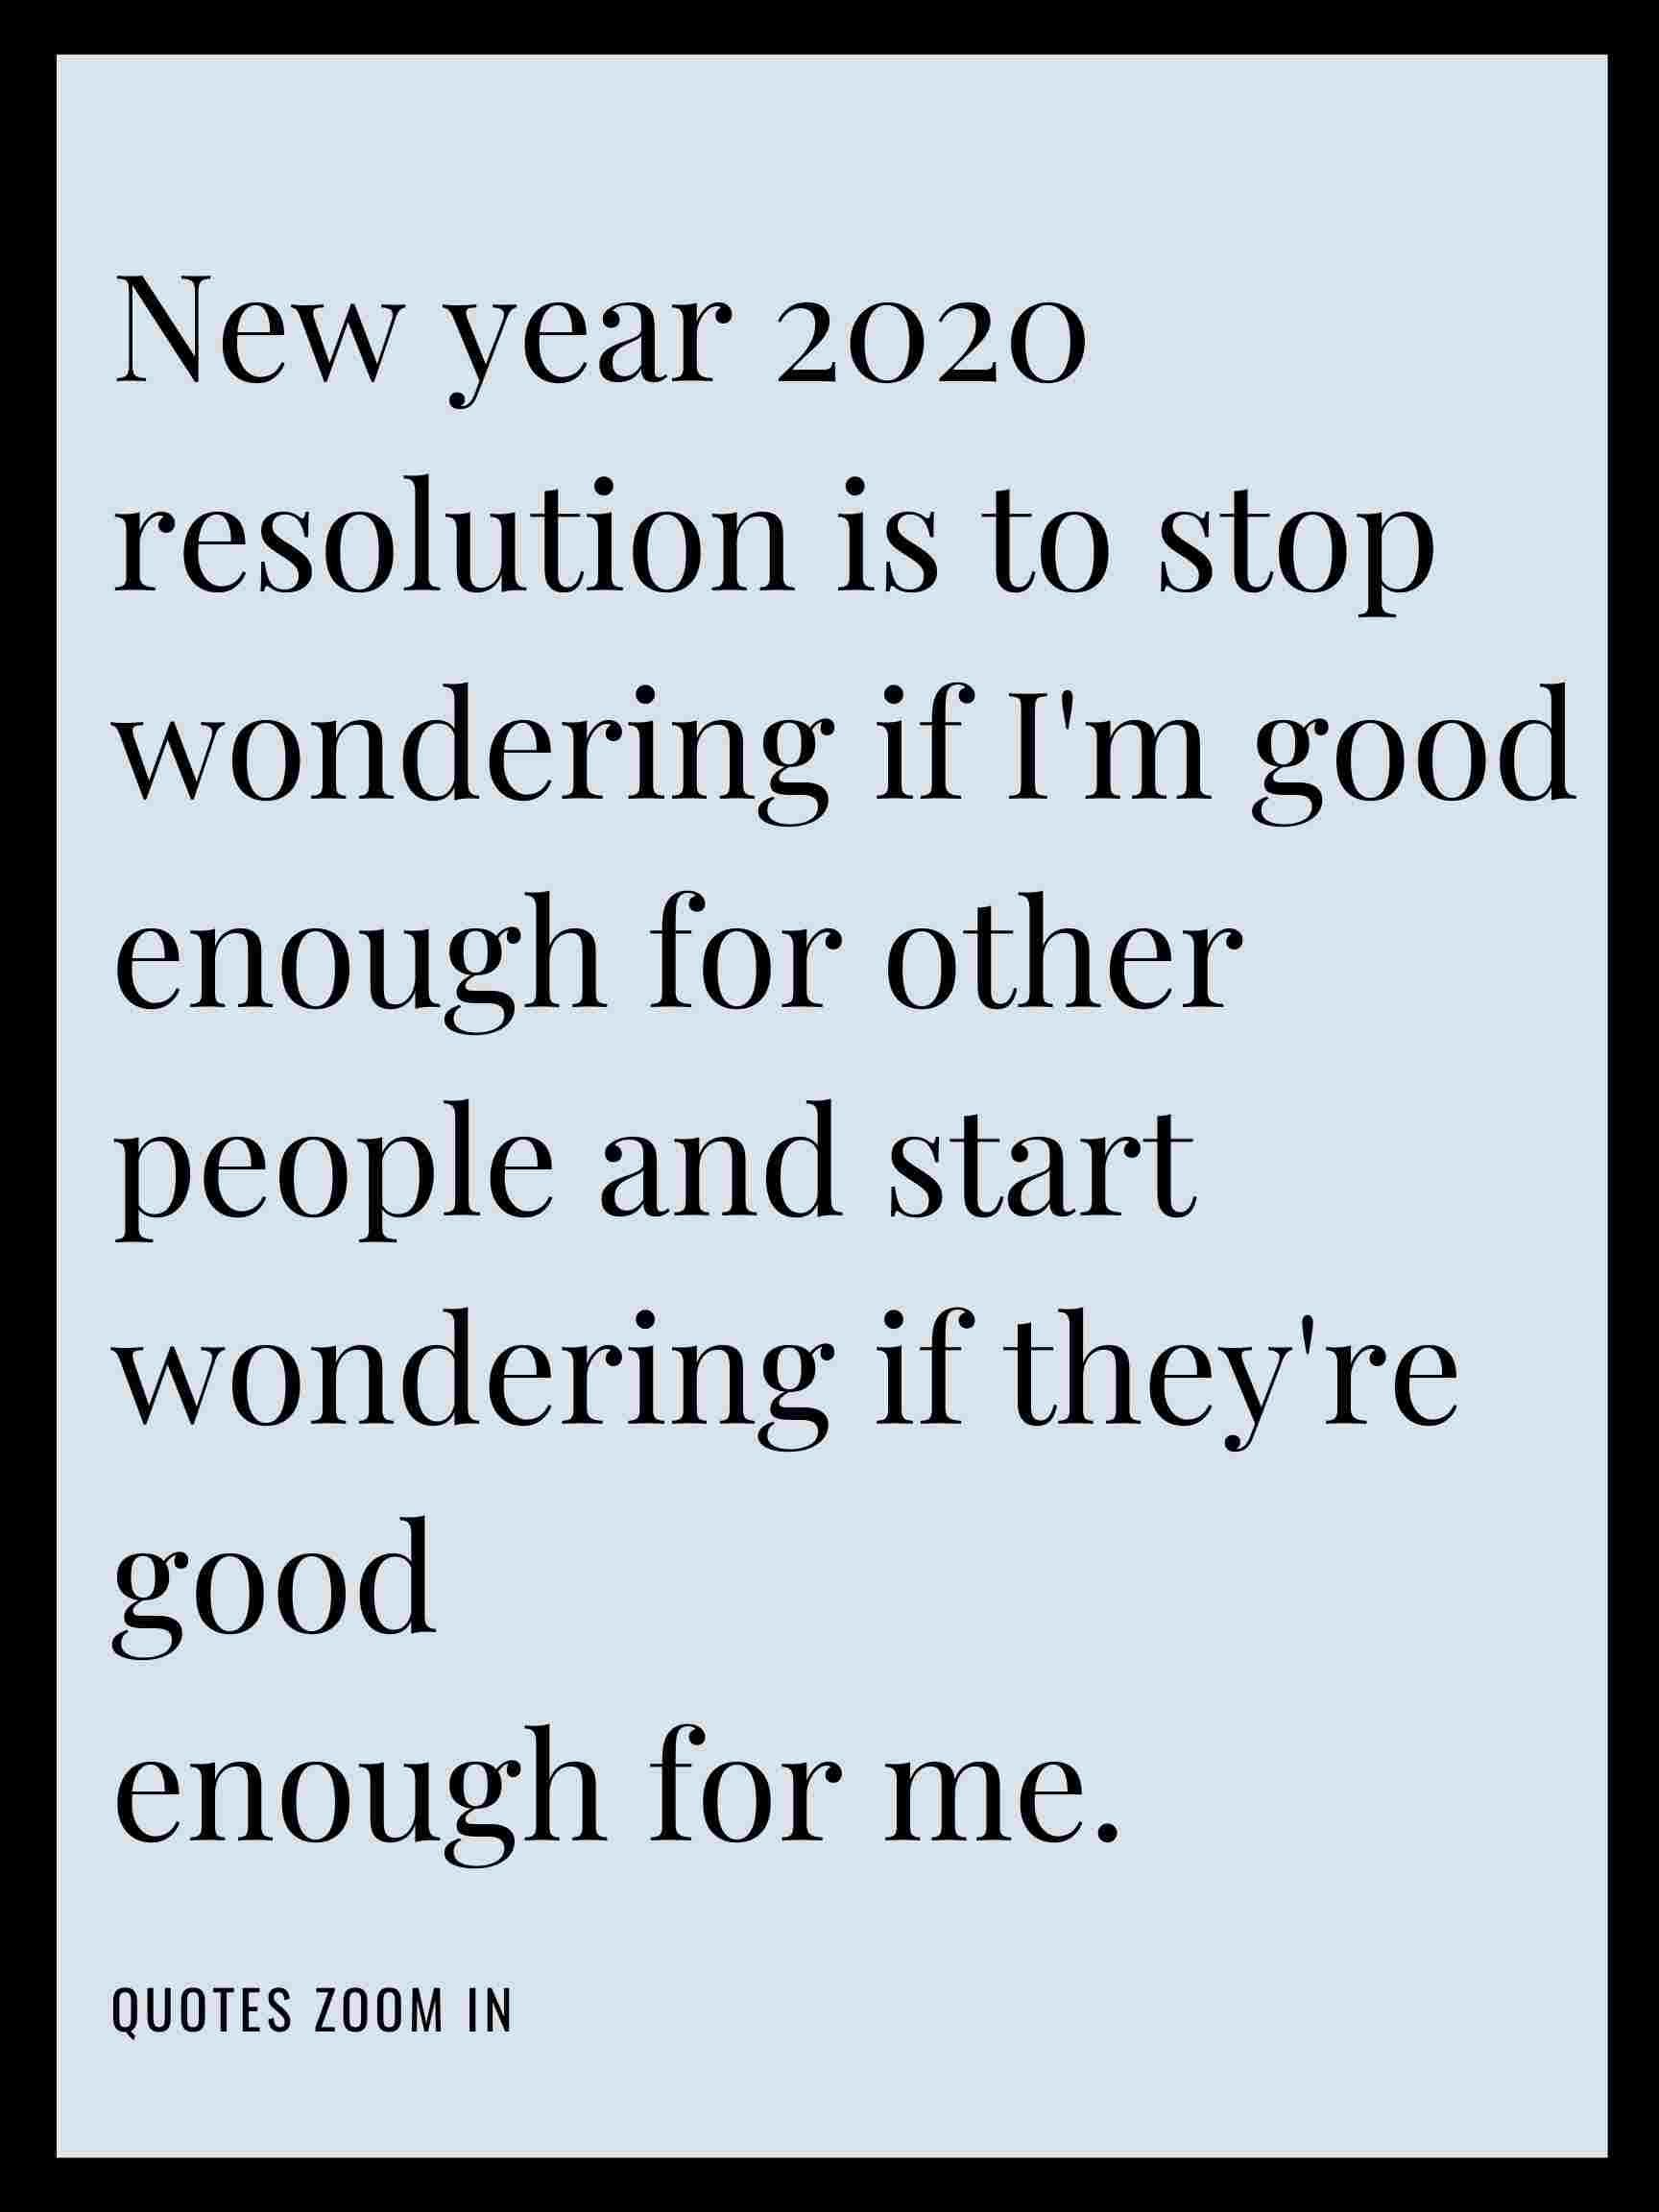 New Year New Me Greetings And Wishes 2020 Quotes About New Year Happy New Year Quotes New Years Resolution Funny